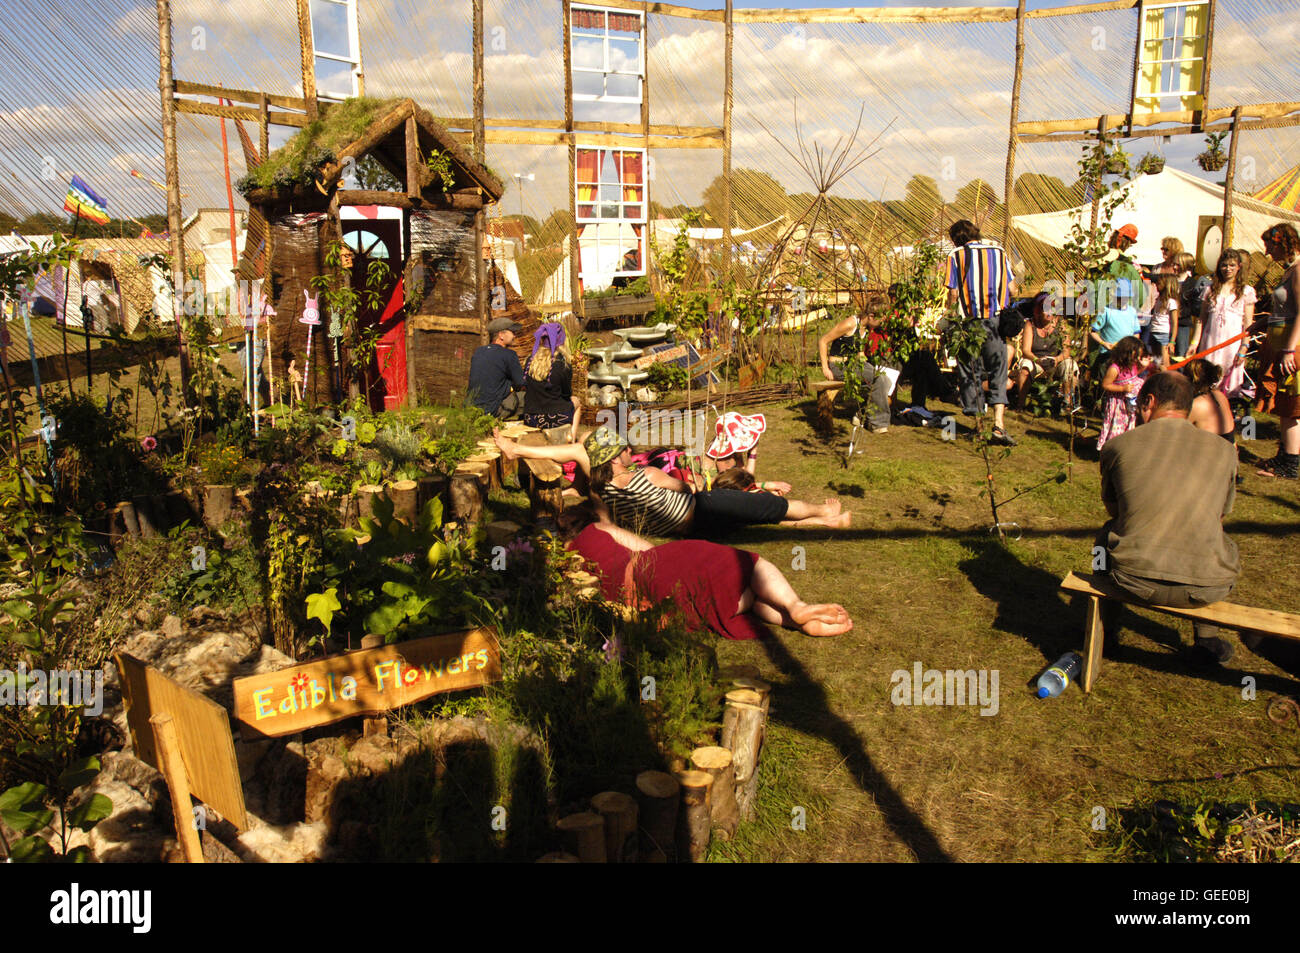 Environmentally conscious festival goers chill out in the 'permaculture' area, Big Green Gathering, UK August - Stock Image